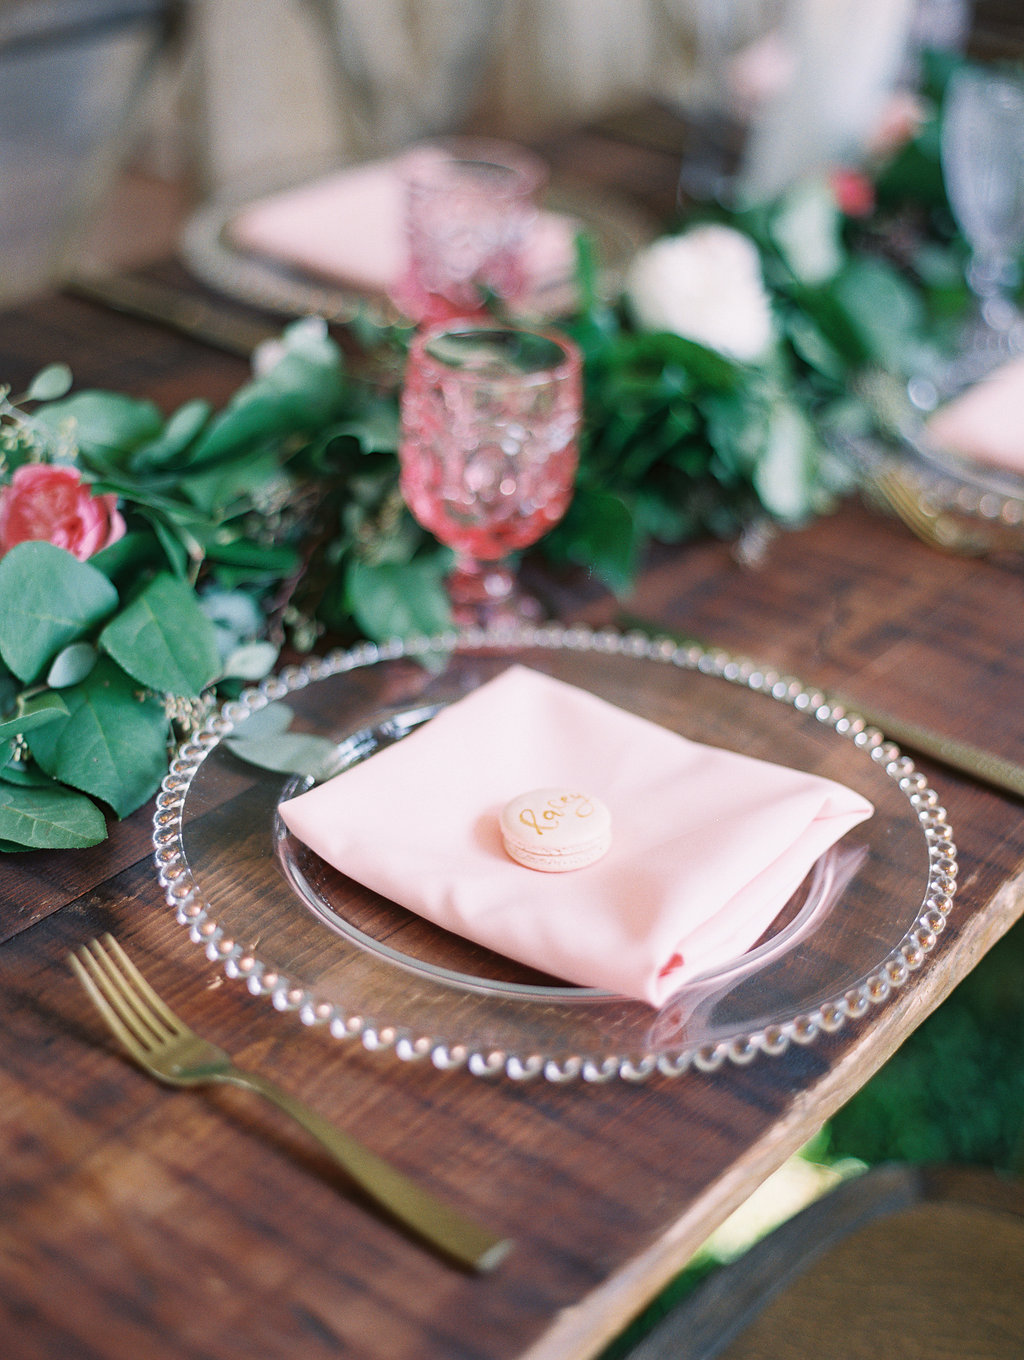 Rustic place setting with greenery table runners and blush accents at wedding in Hilton Head SC  Craft beer station at Oldfield Club wedding  //  HIlton Head photographs by Landon Jacobs  //  A Lowcountry Wedding Magazine